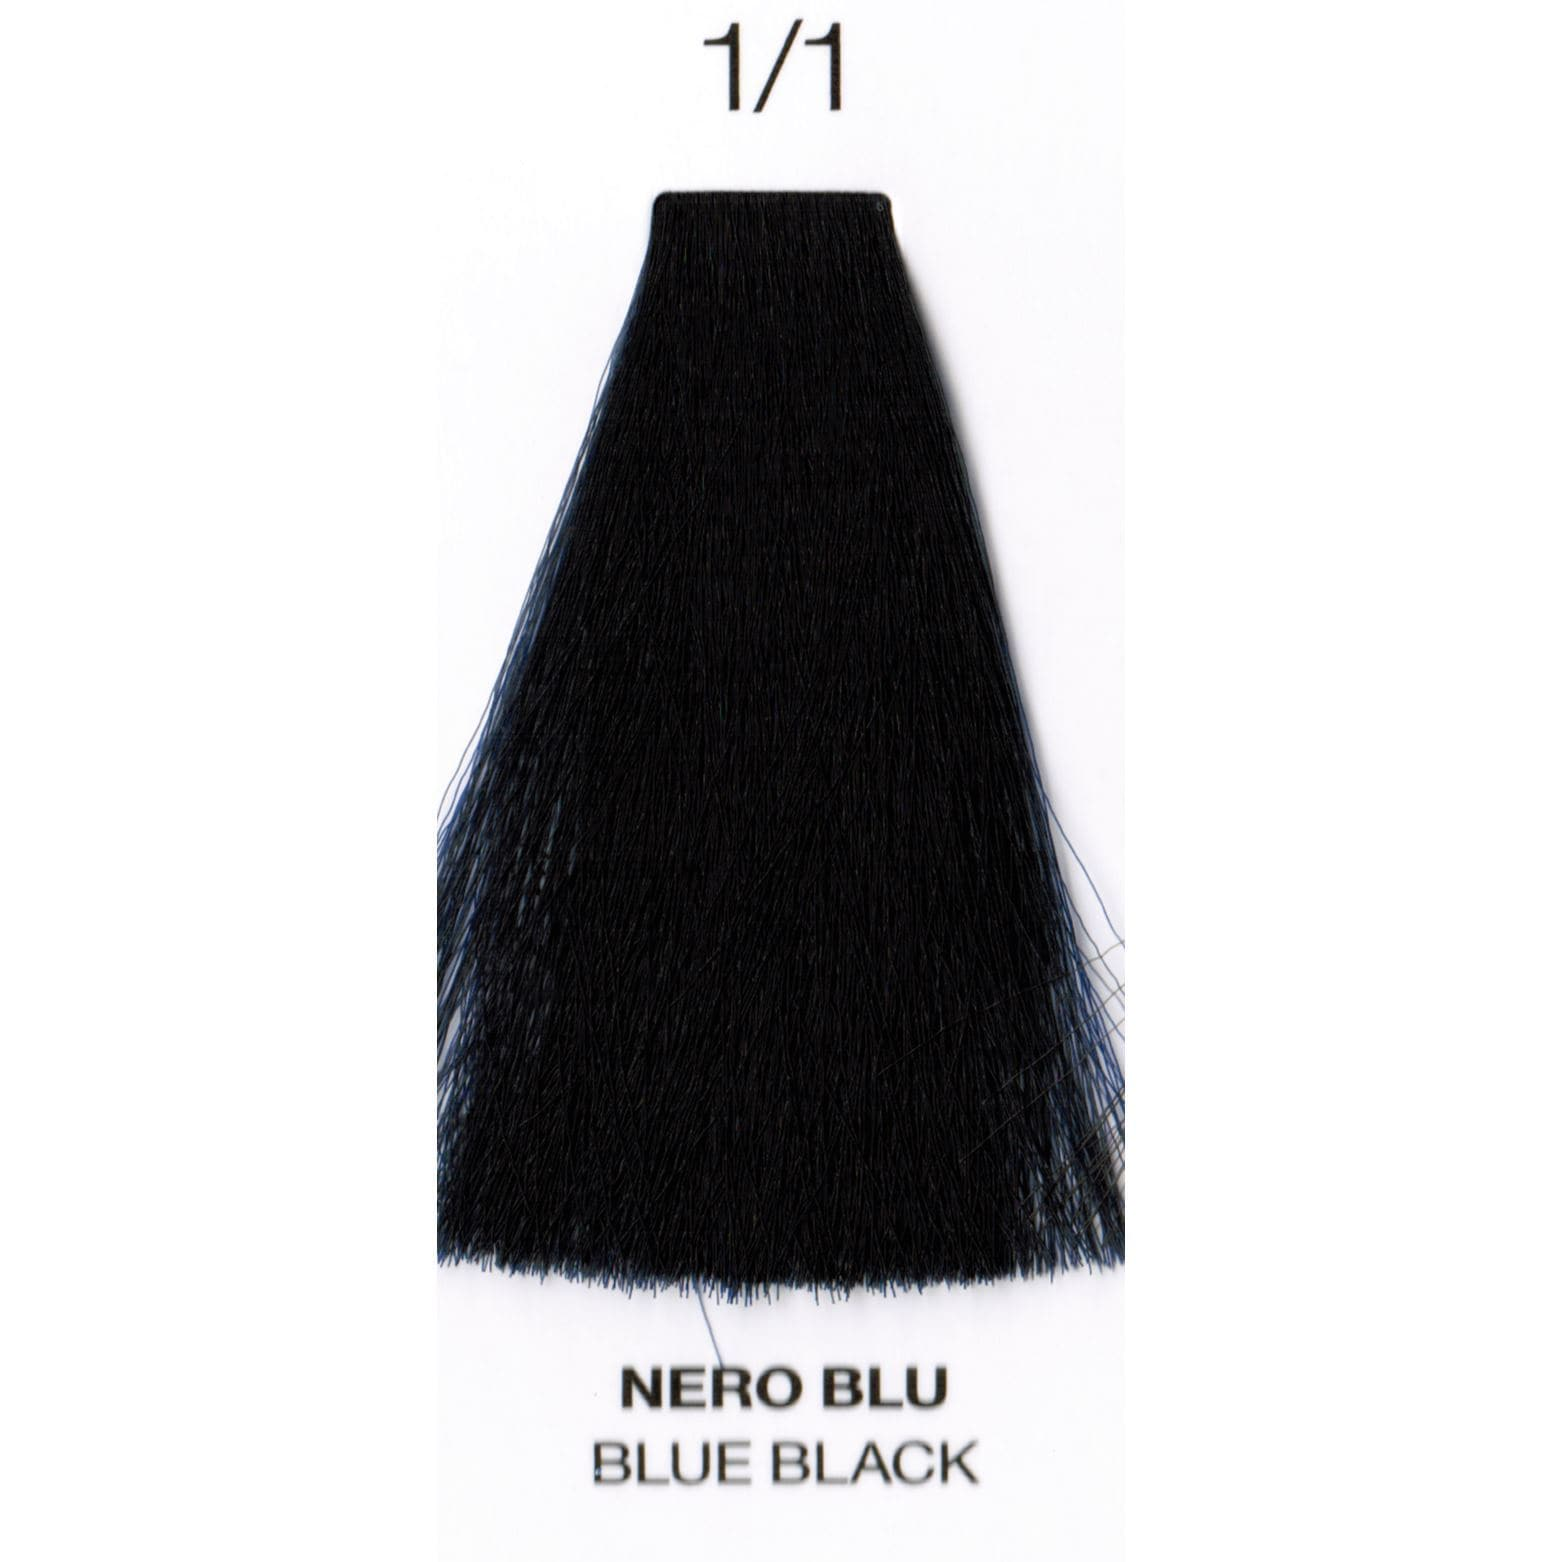 1/1 Blue Black | Purity | Ammonia-Free Permanent Hair Color | OYSTER | SHSalons.com